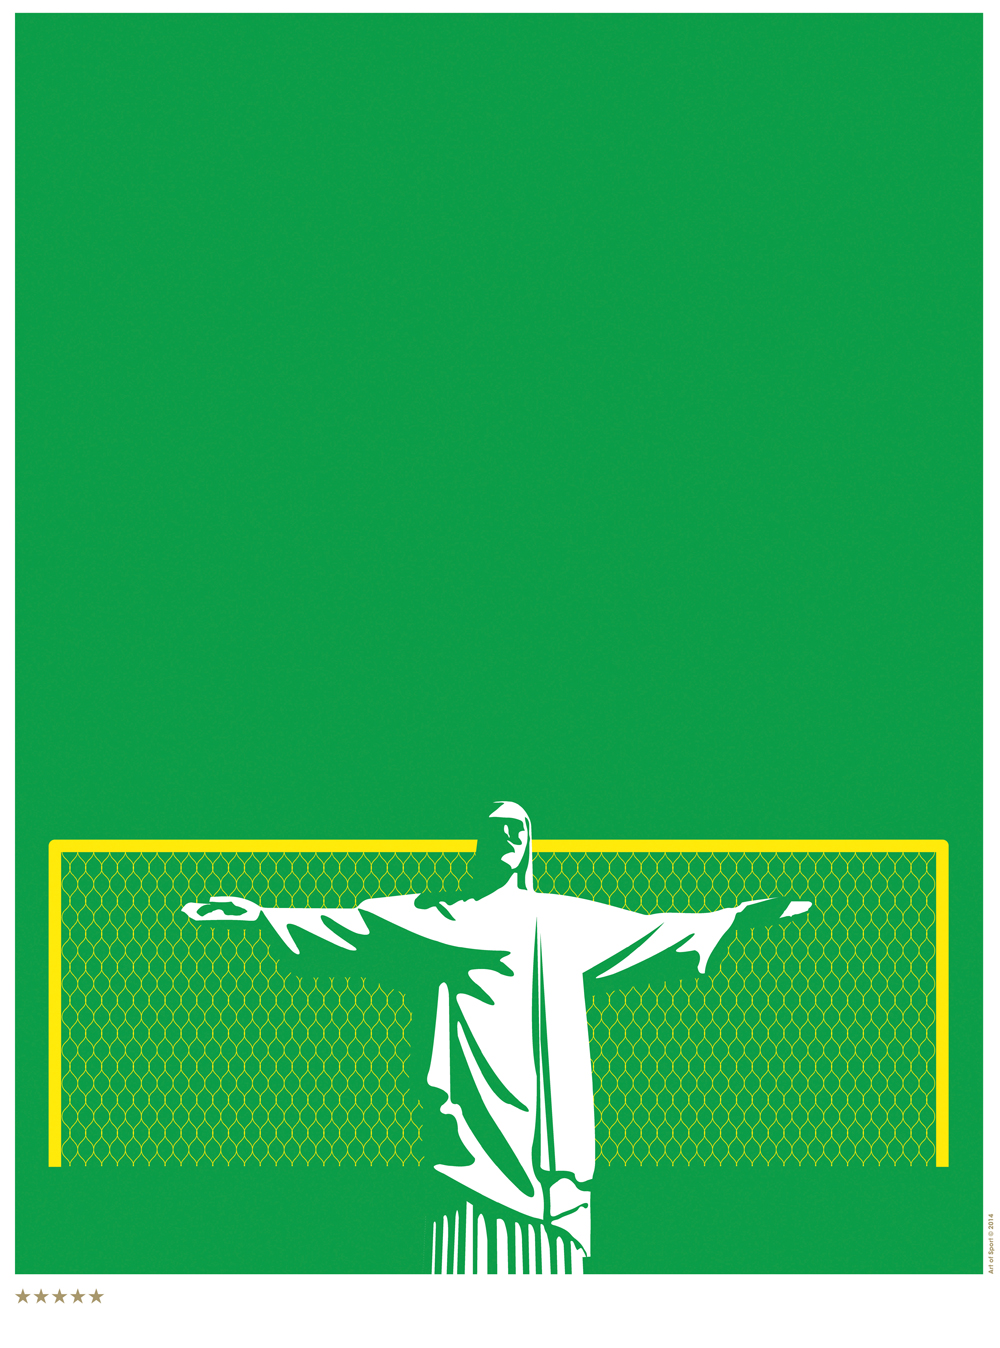 'Jesus Saves' for the Brazil World Cup. Art of Sport, USA, 2014. Solv, creative directors Rob Duncan, and John Paul Stallard